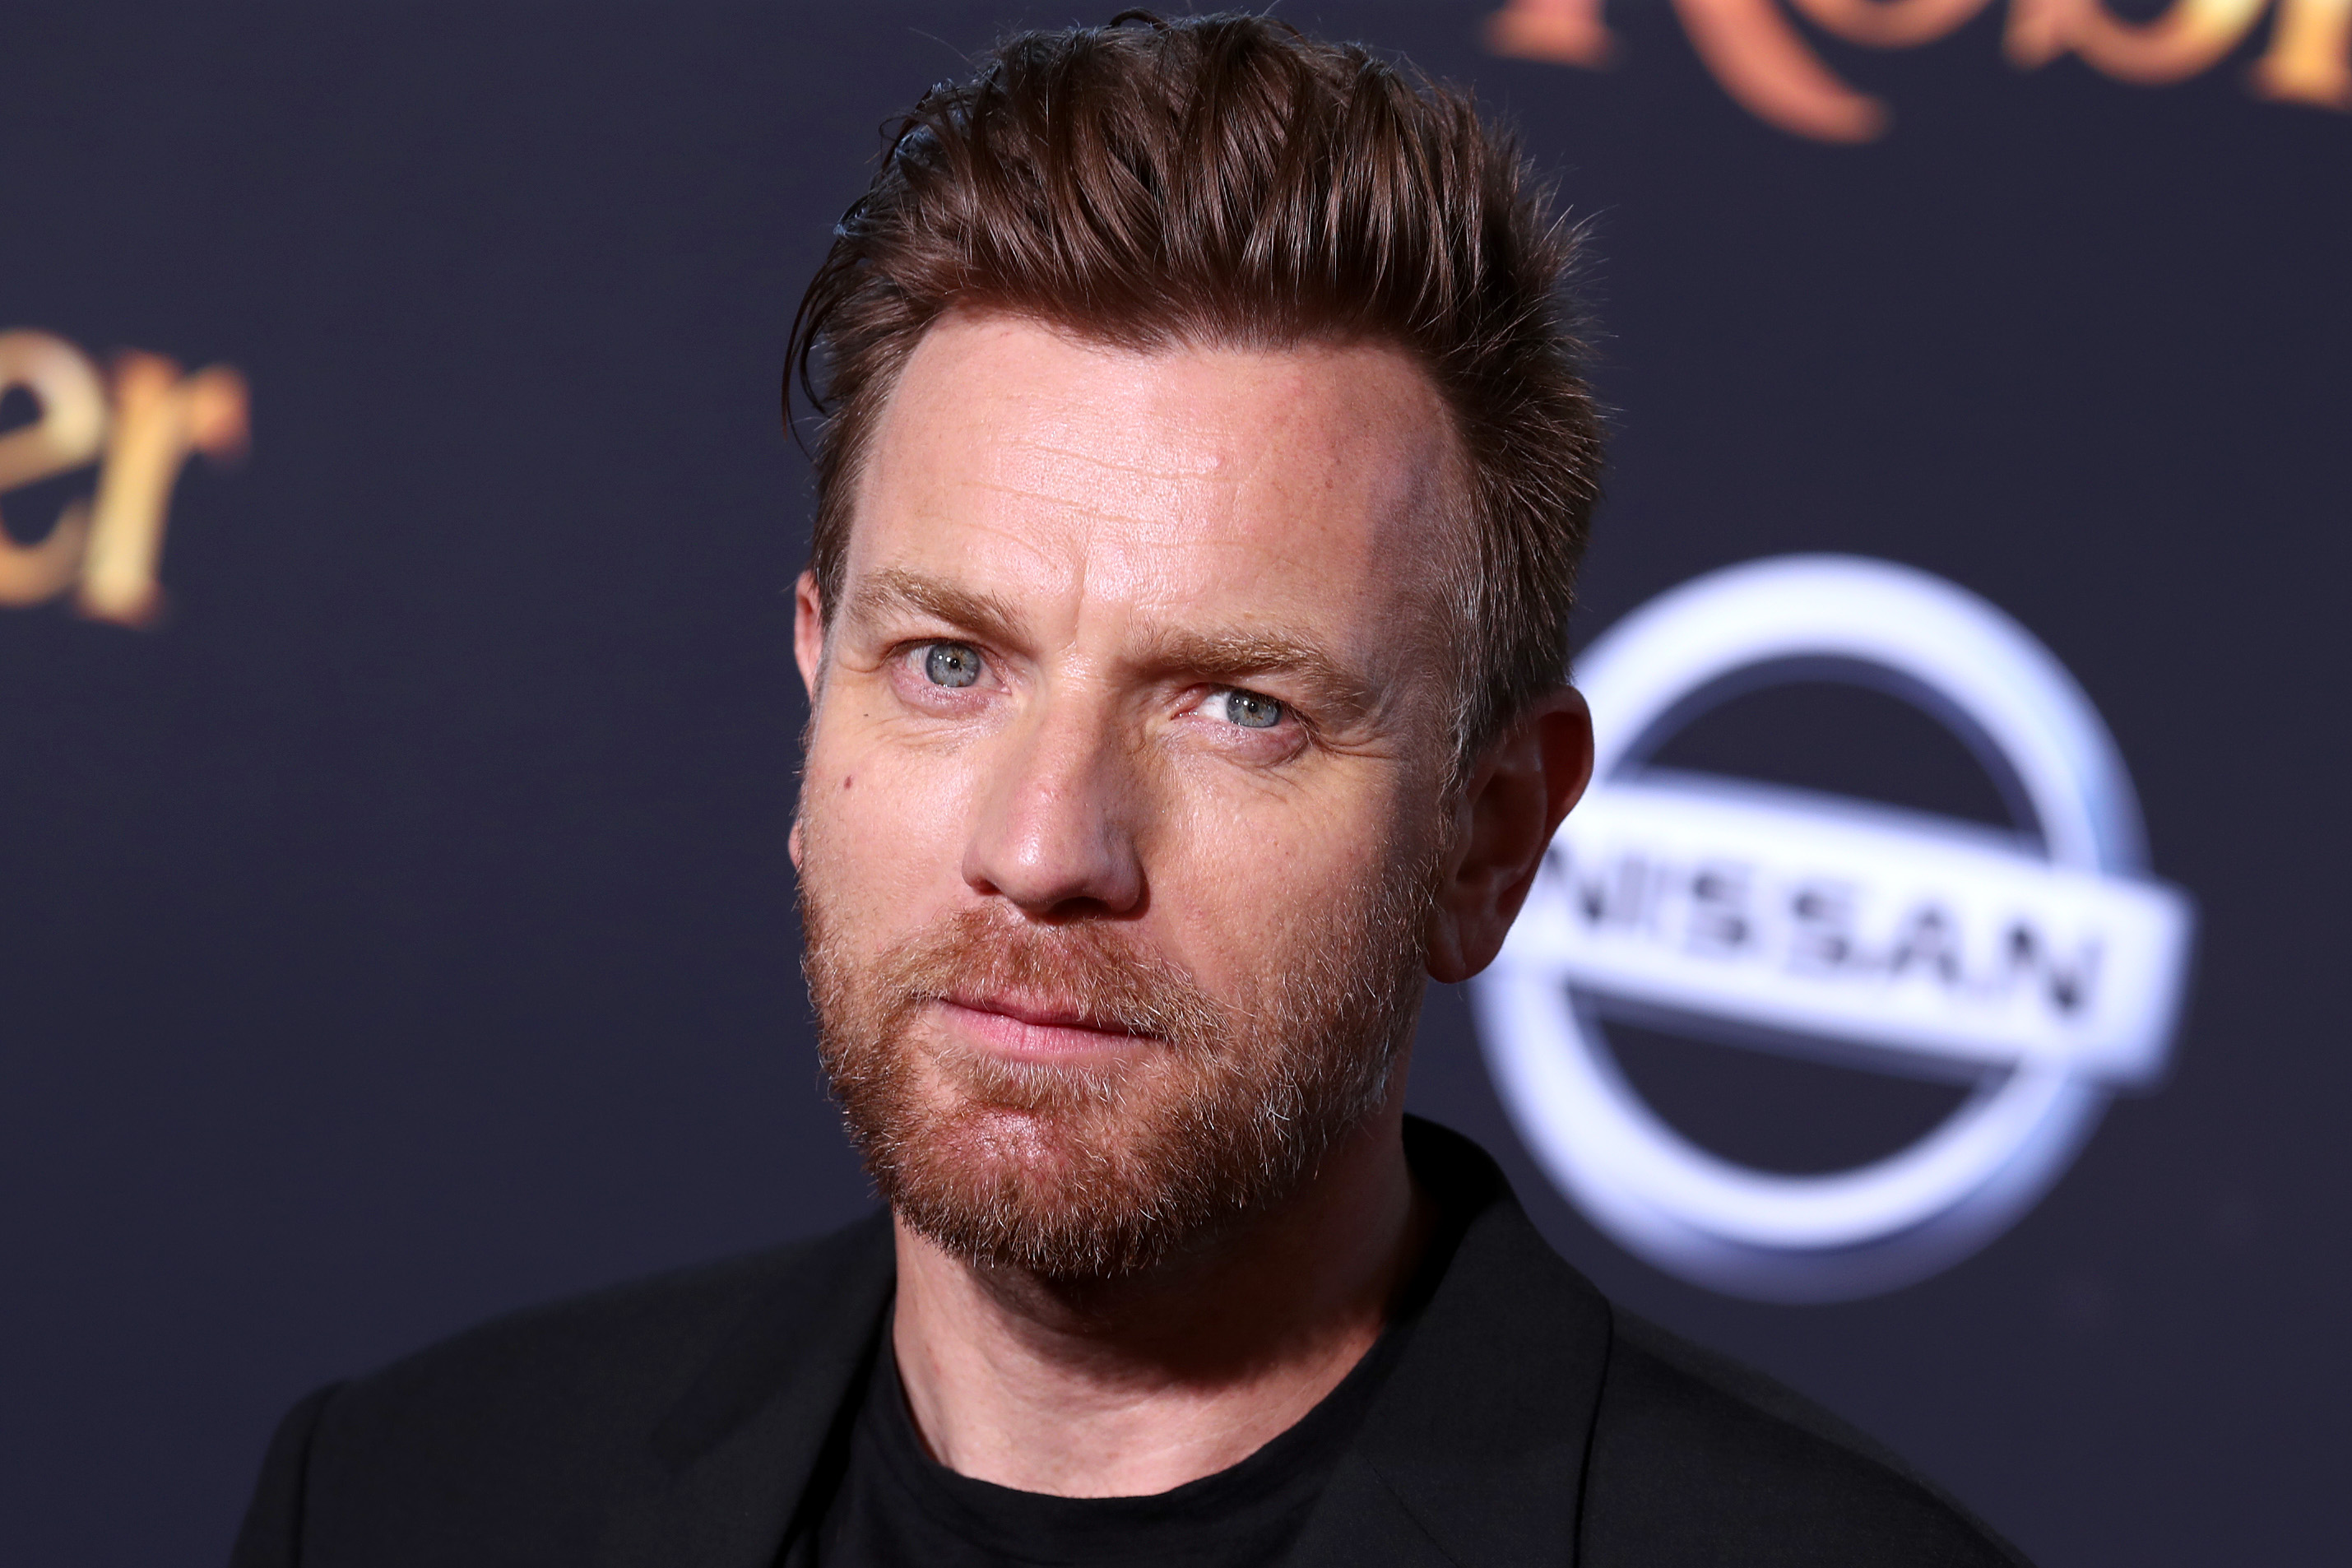 Ewan McGregor Clears Up 'Obi-Wan' Delay Rumors, Says Production Pushed to 2021